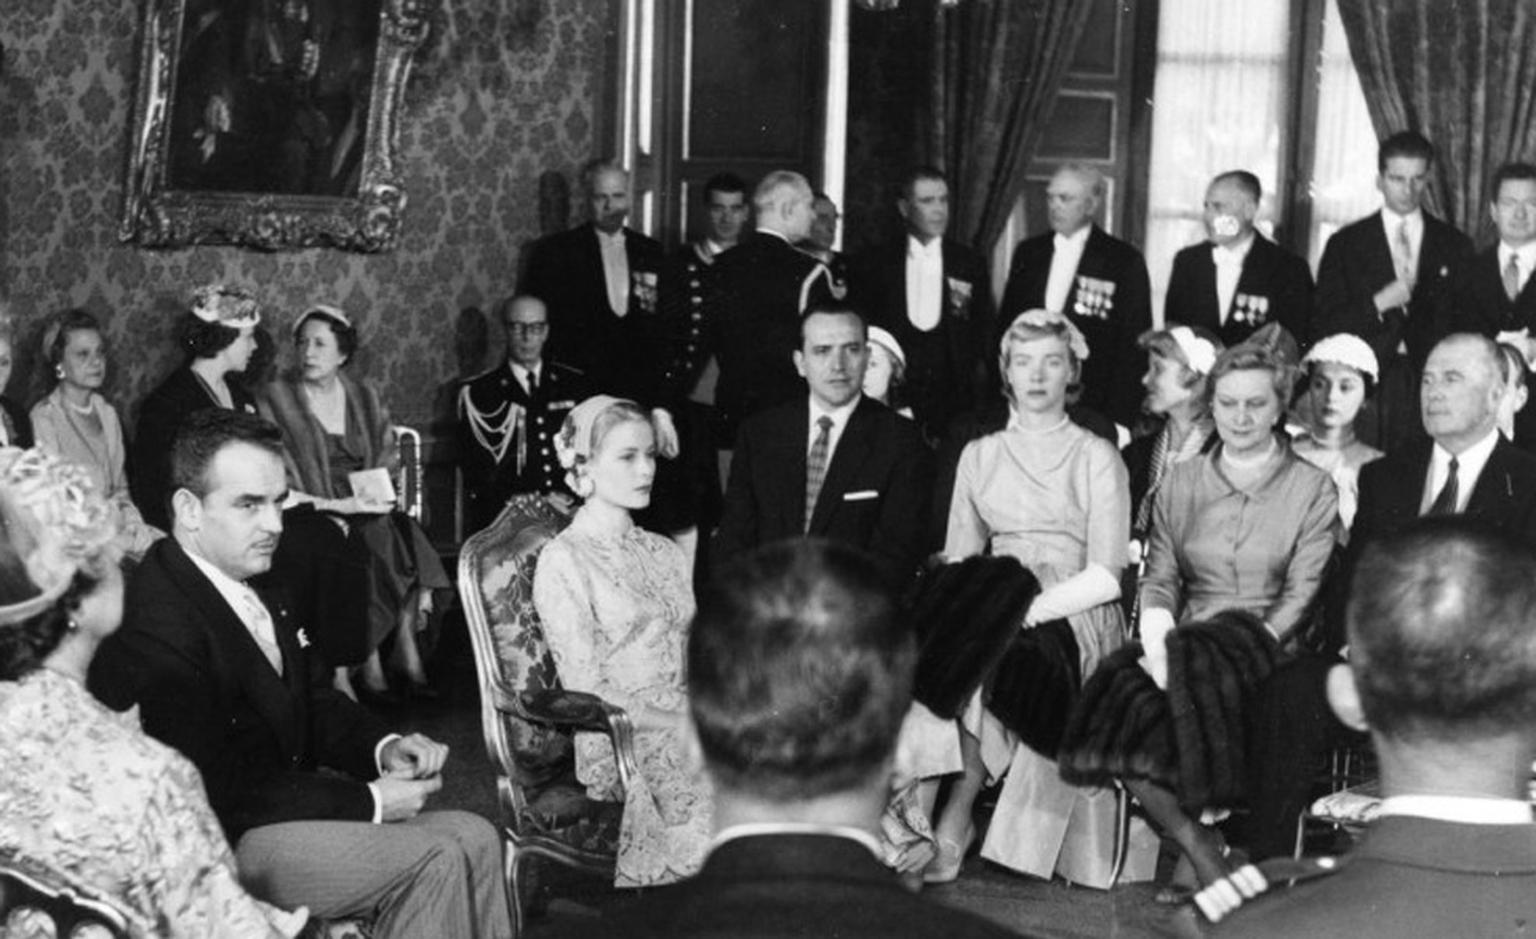 Civil wedding of Prince Rainier III and Princess Grace, Monaco 1956. Photo: Prince's Palace Monaco